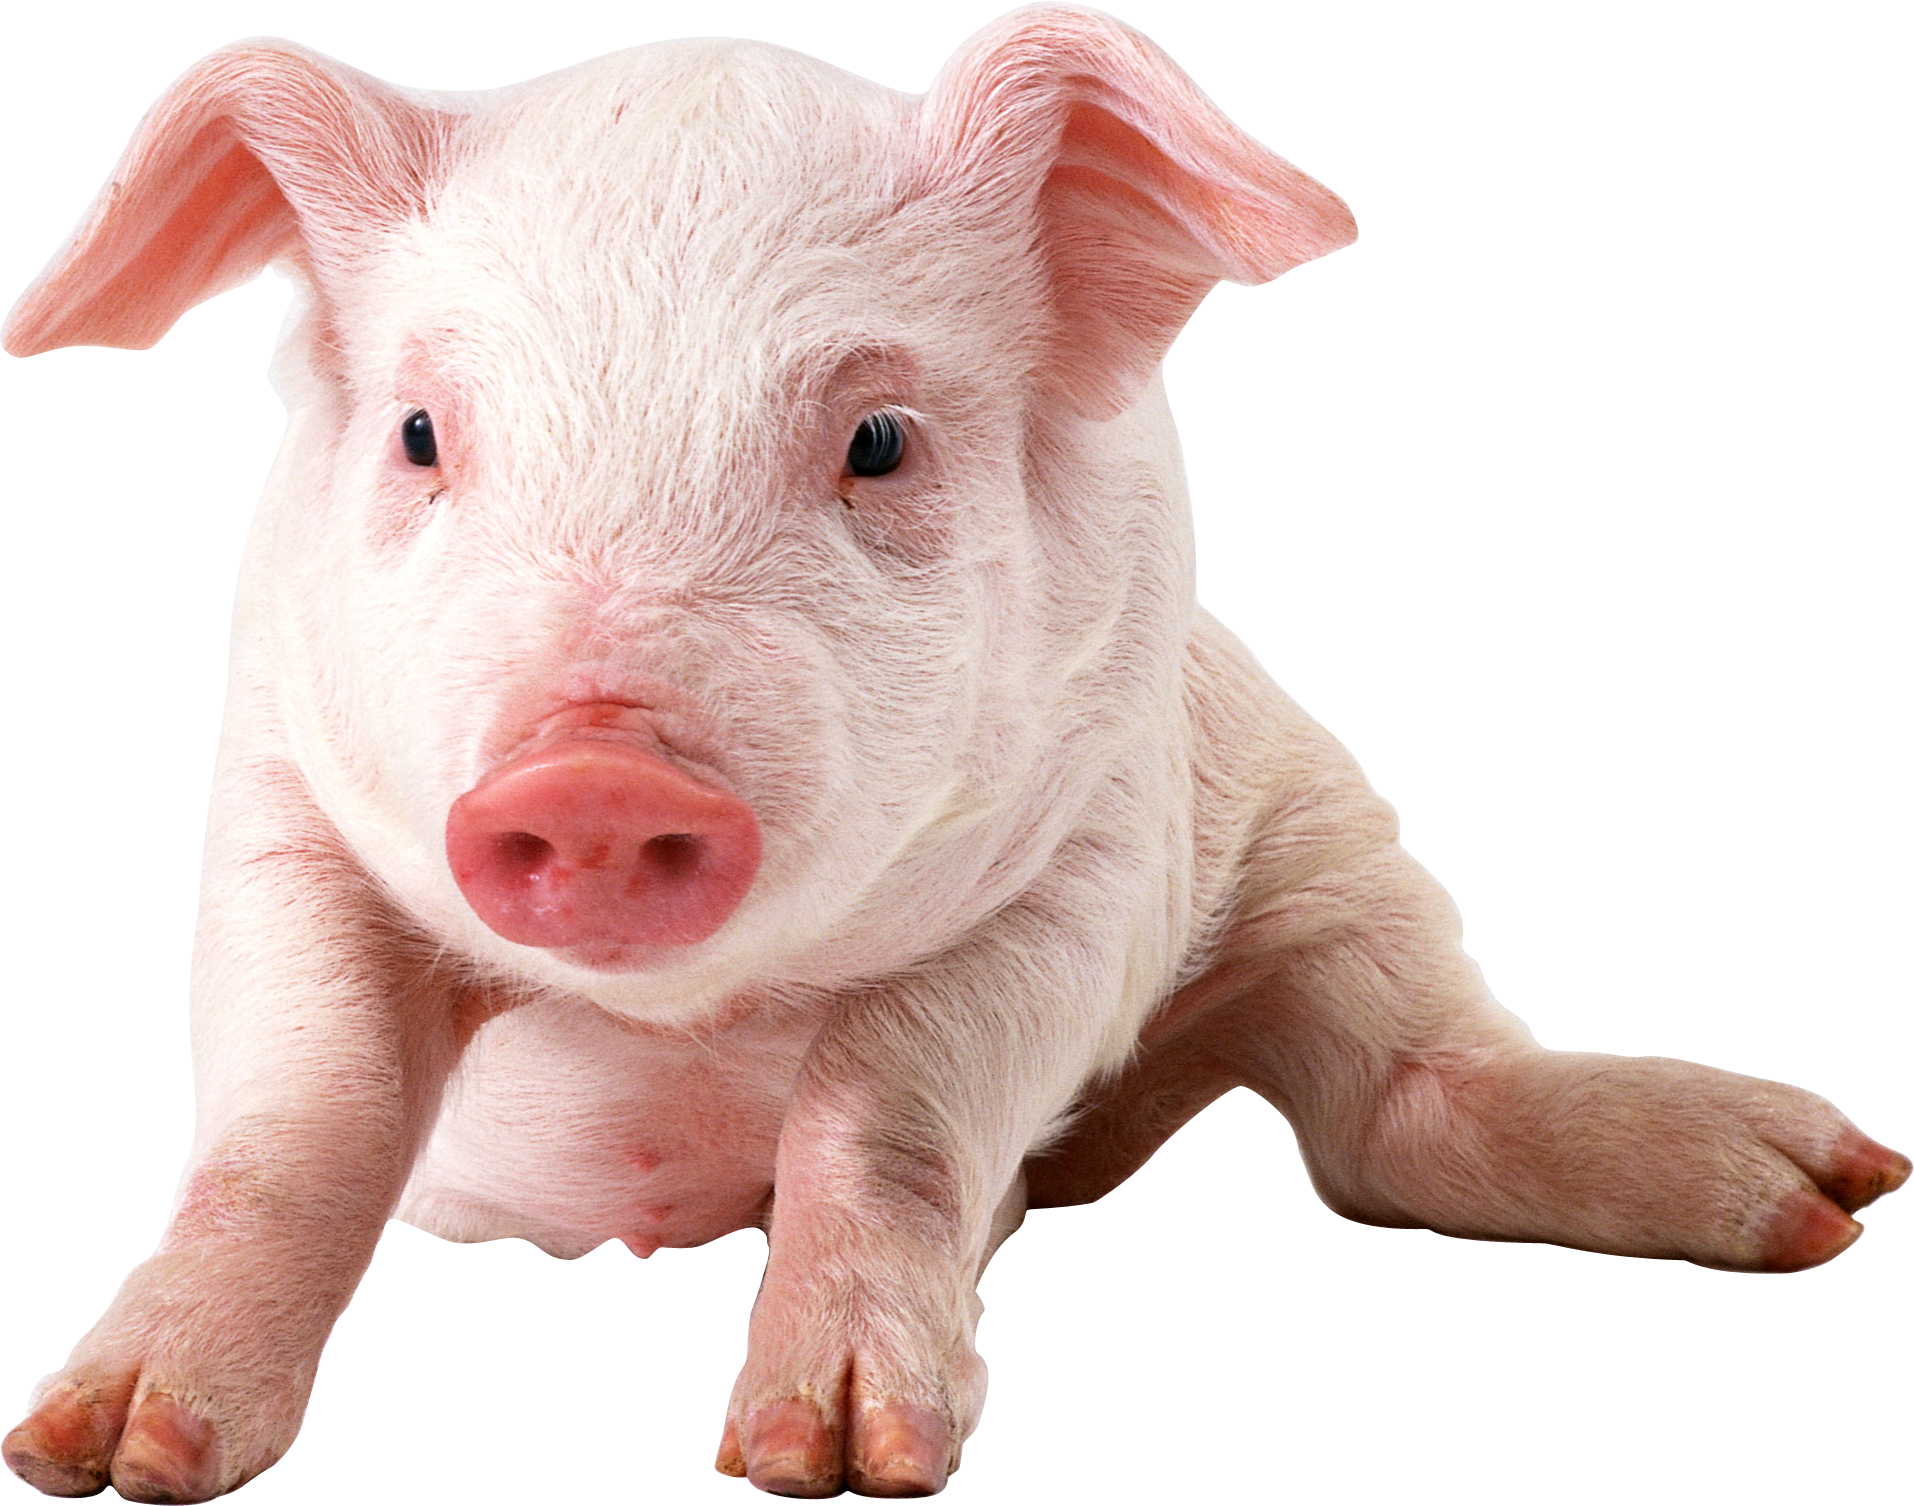 Pig PNG - 7819